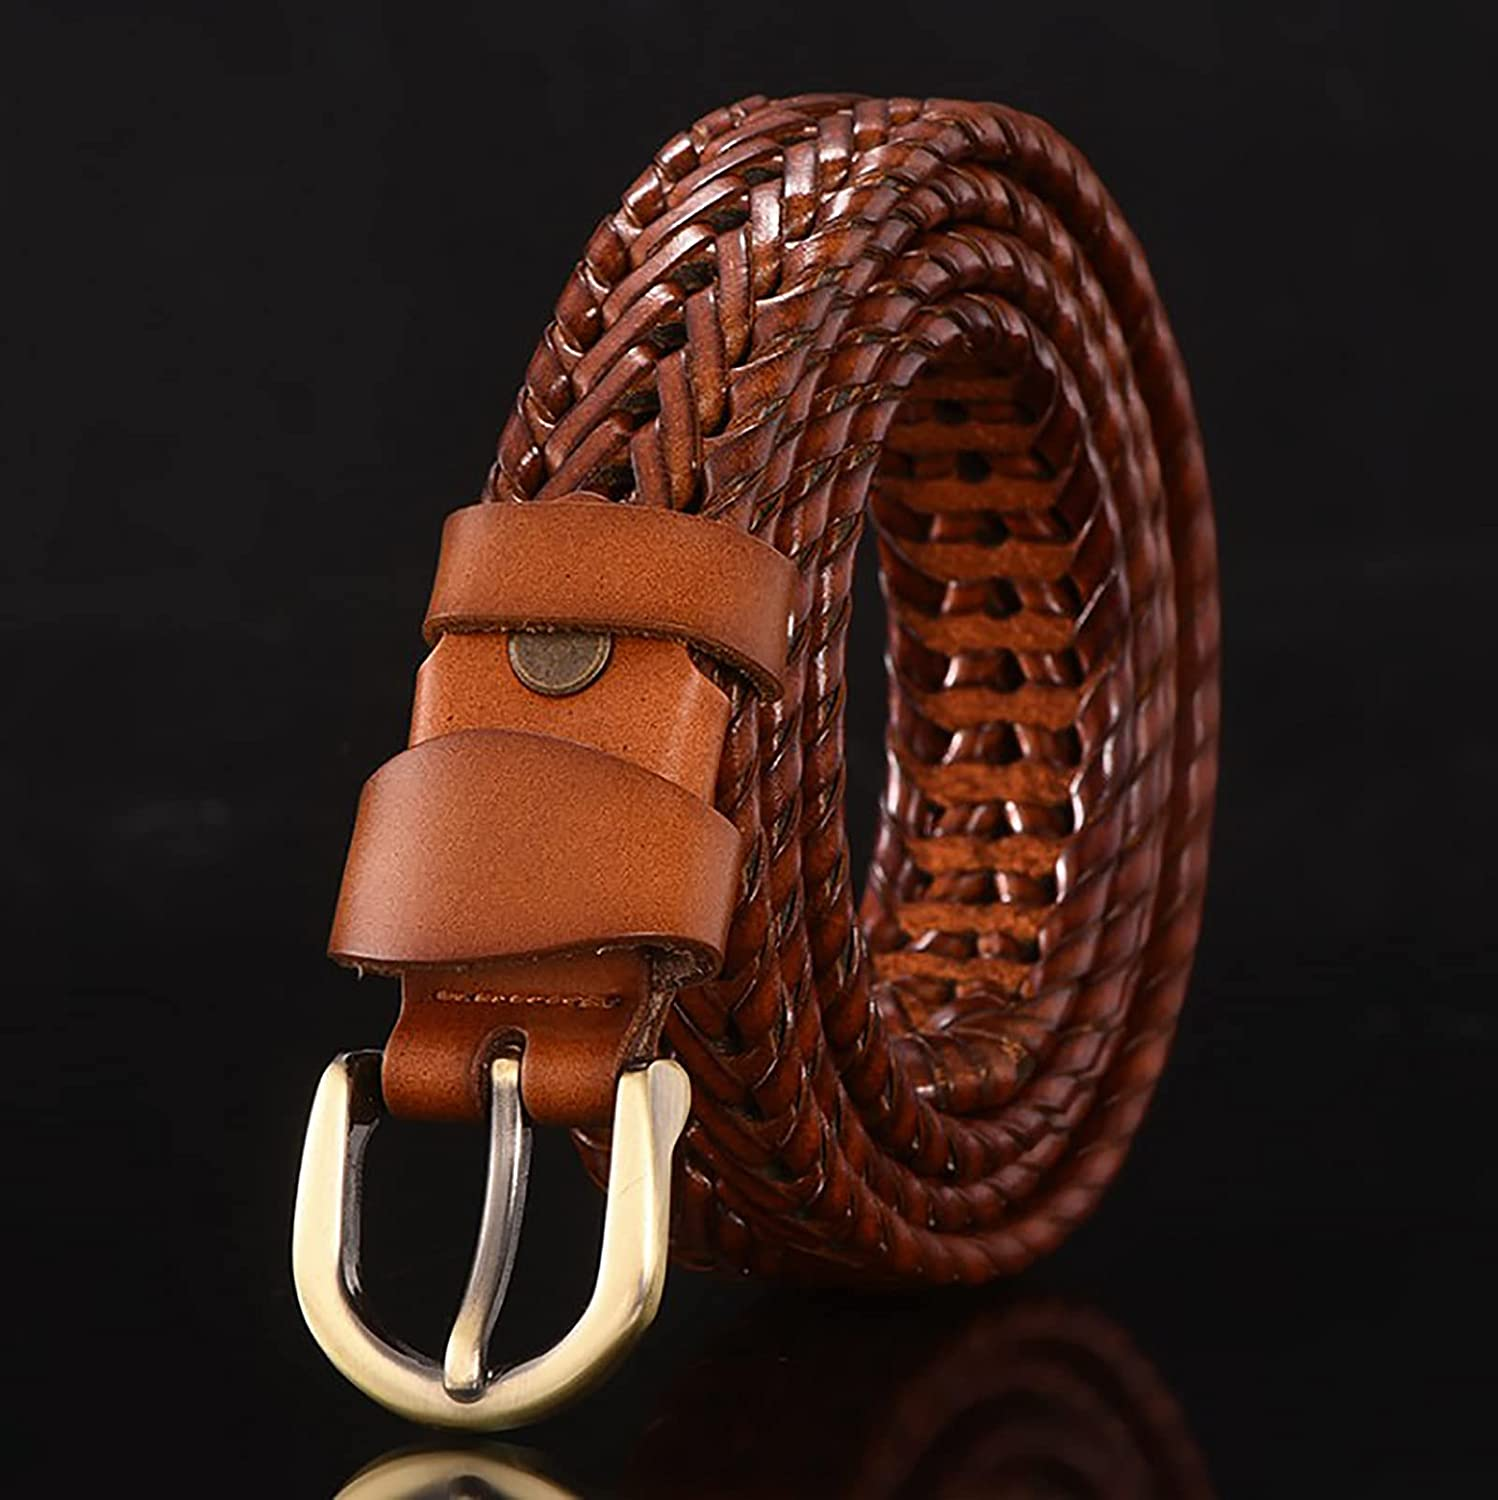 xzyq Max 87% OFF Only Max 51% OFF Post one Article Men's Business Leather Belts